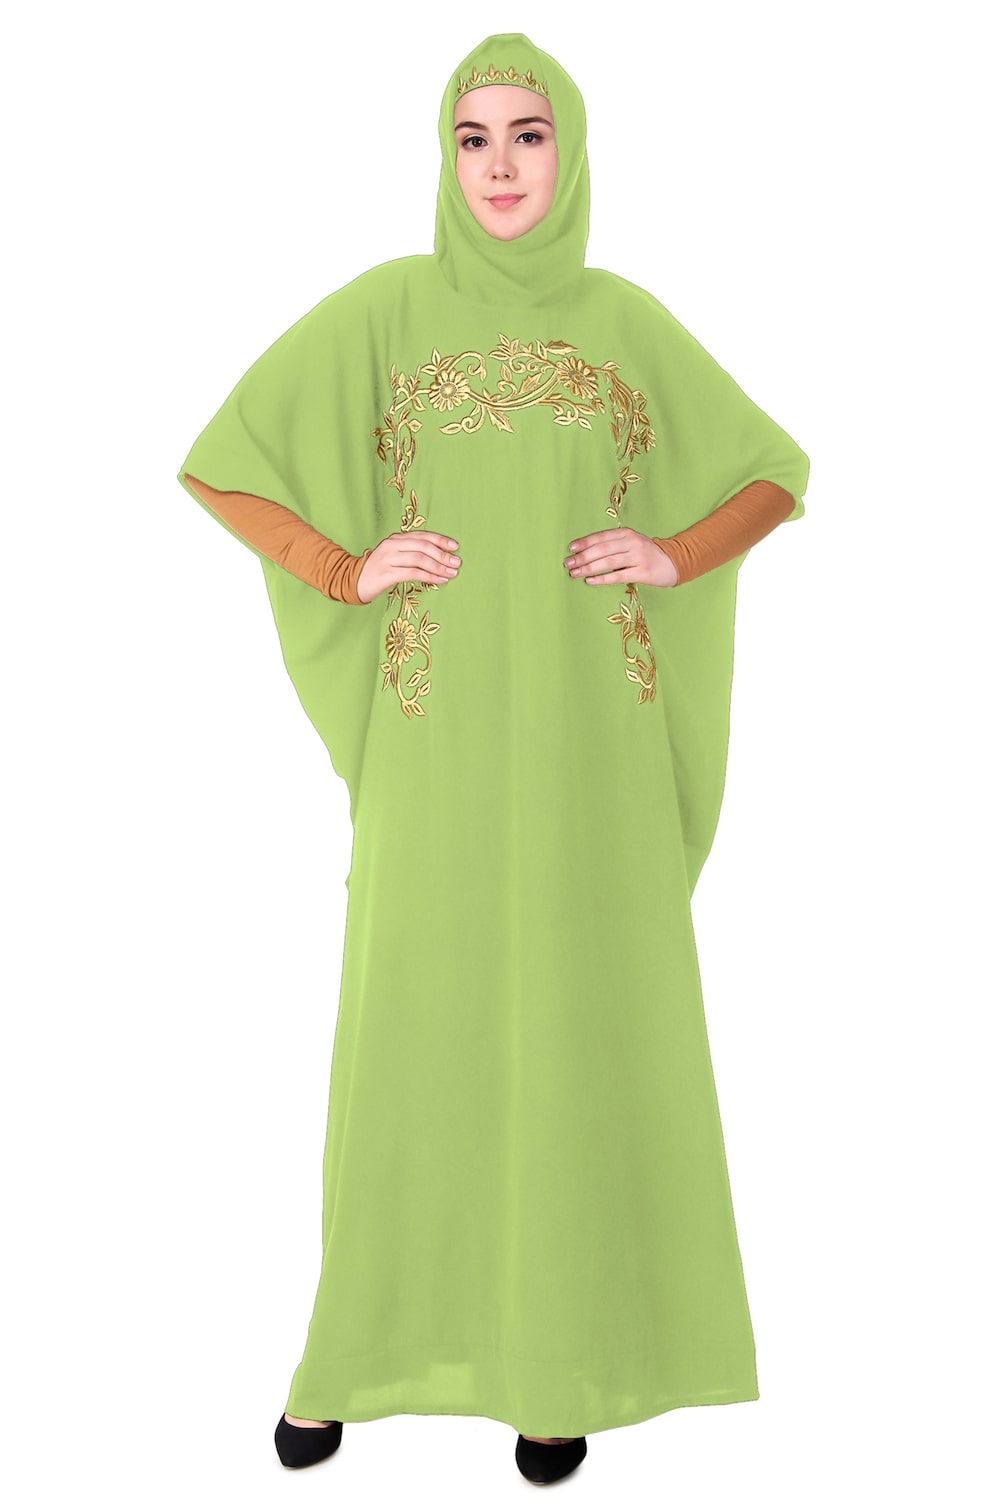 Designer Wear Hand Embroidered Dubai Kaftan